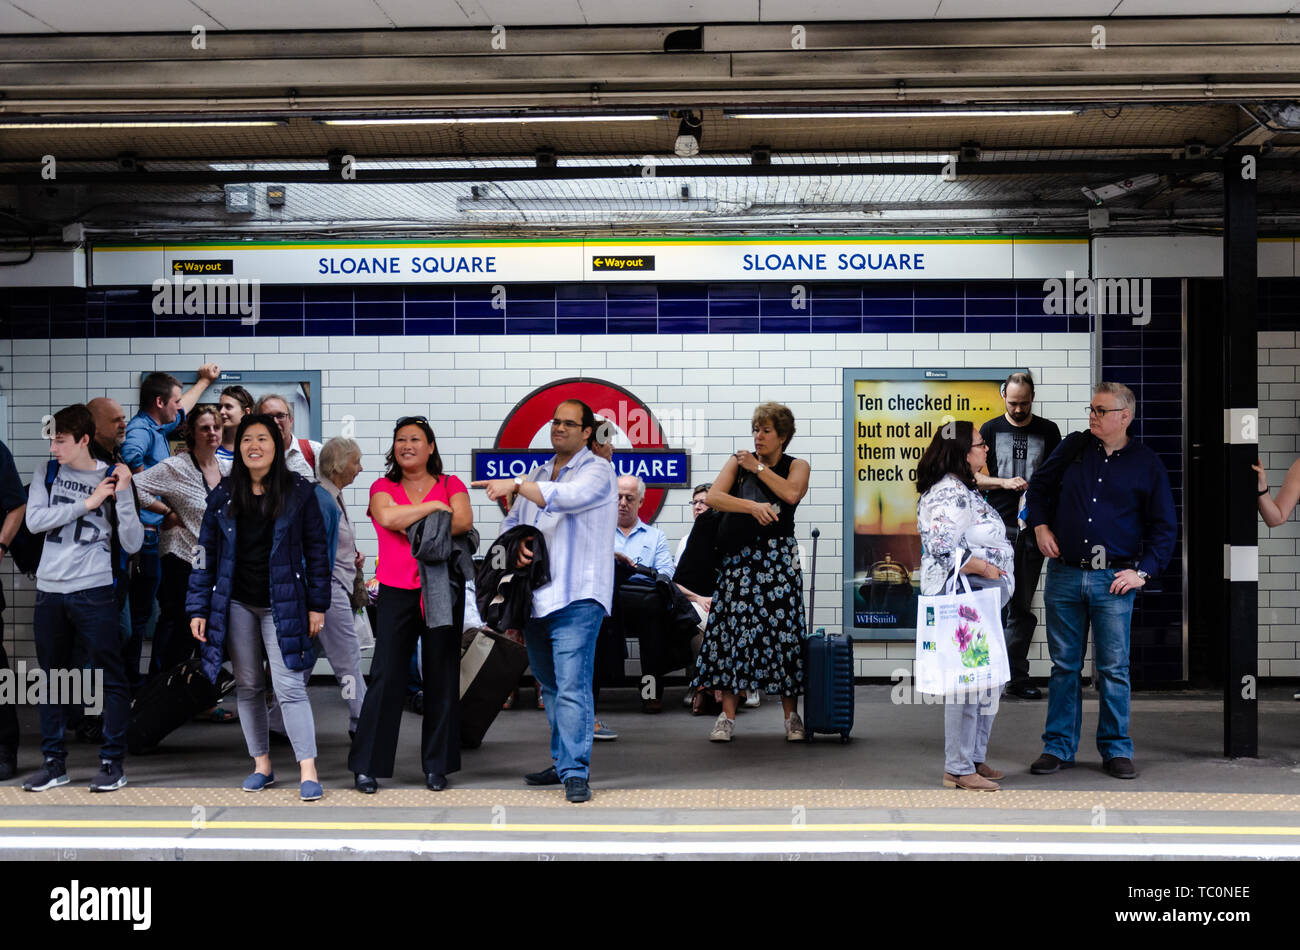 People stand and wait for a train on the platform at Sloane Square London Underground Tube Station - Stock Image